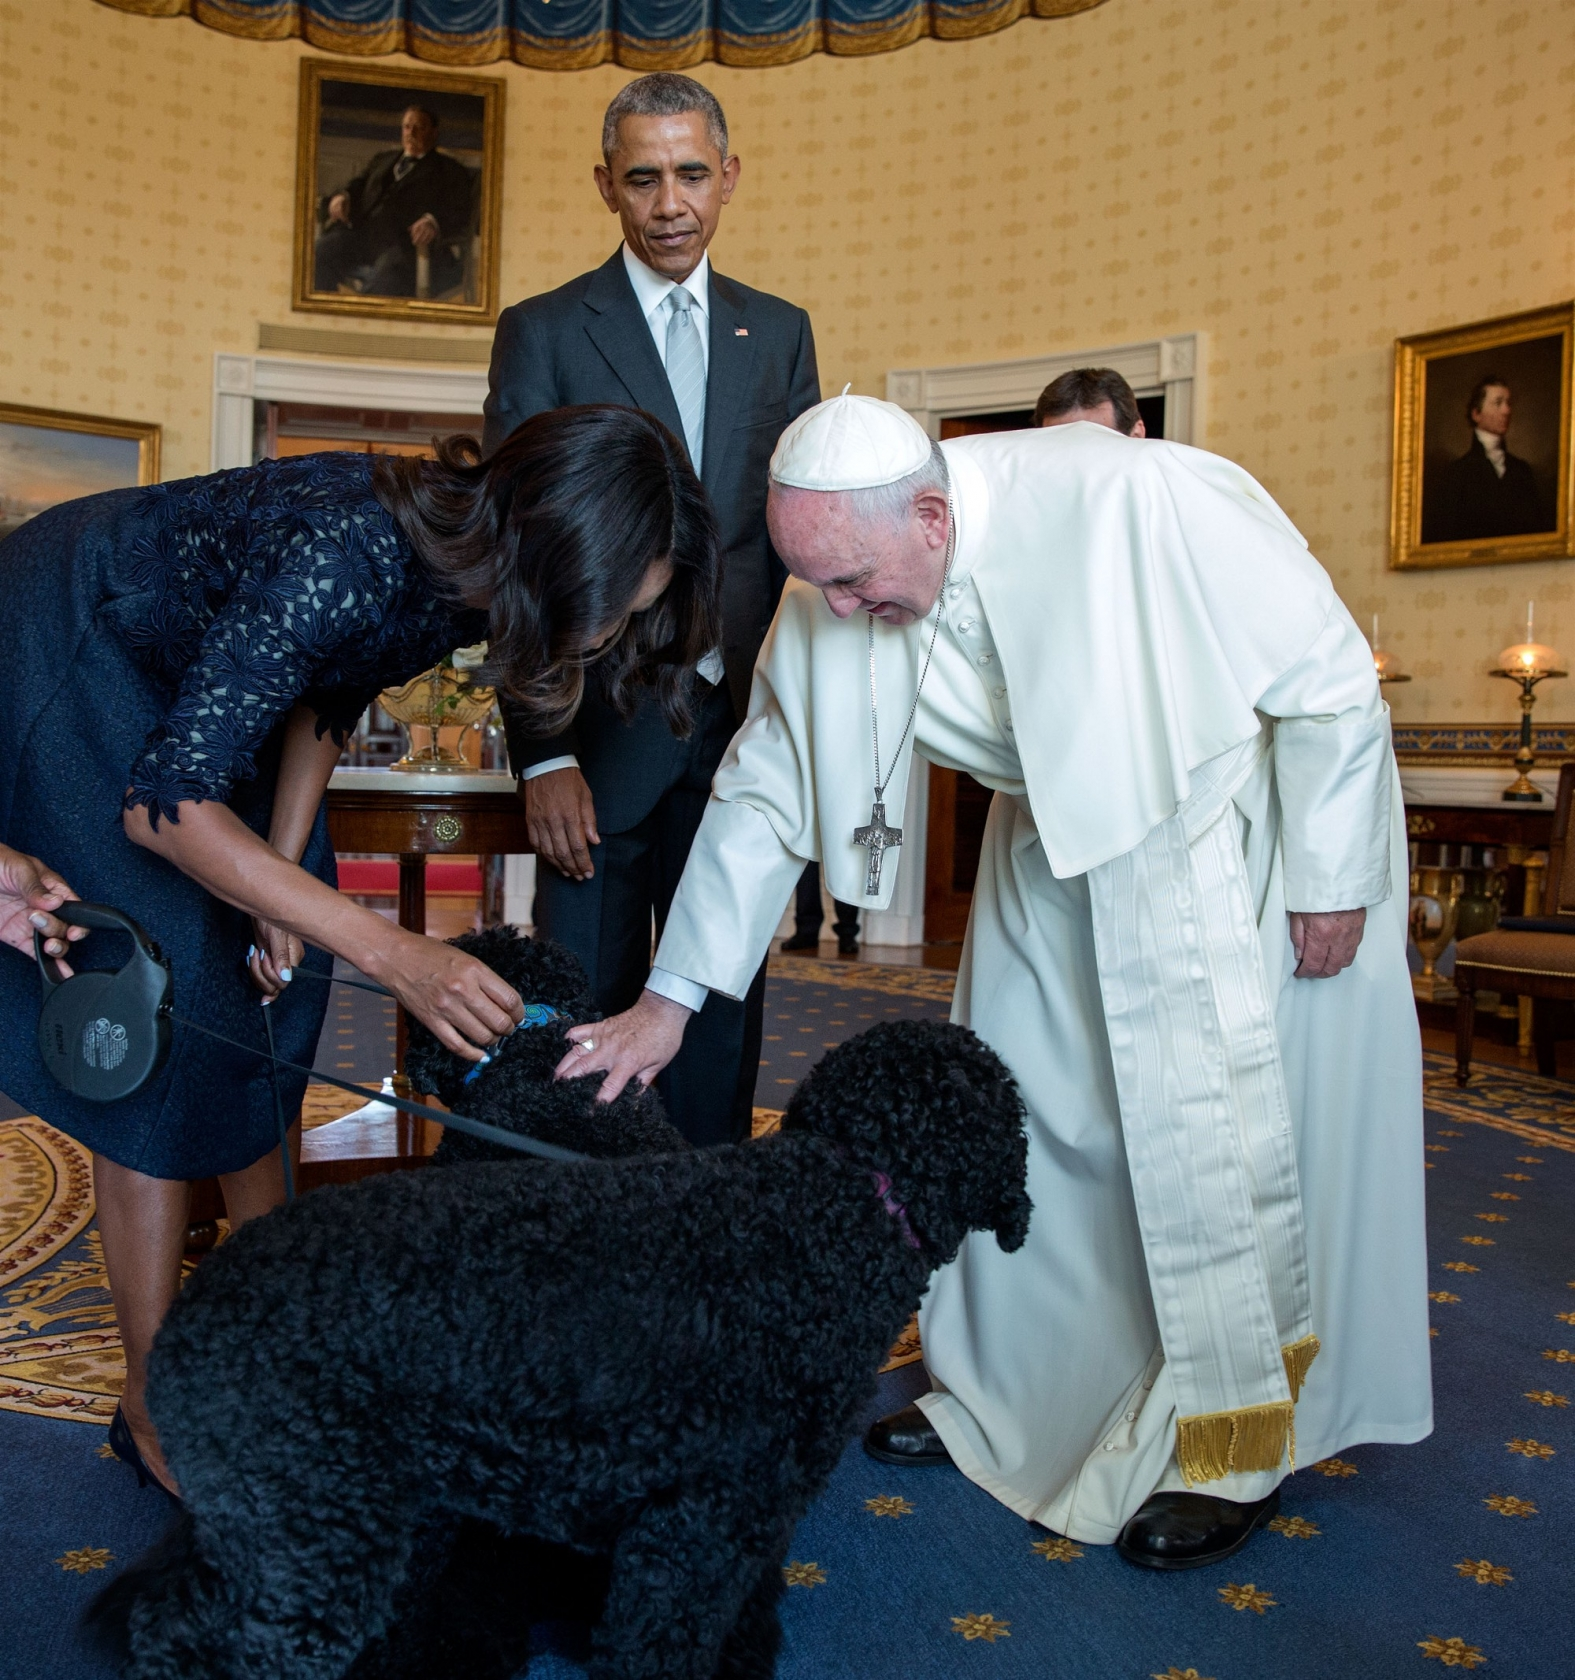 The First Lady introduces Pope Francis to their family pets Bo and Sunny following the ceremony. (Official White House Photo by Pete Souza)